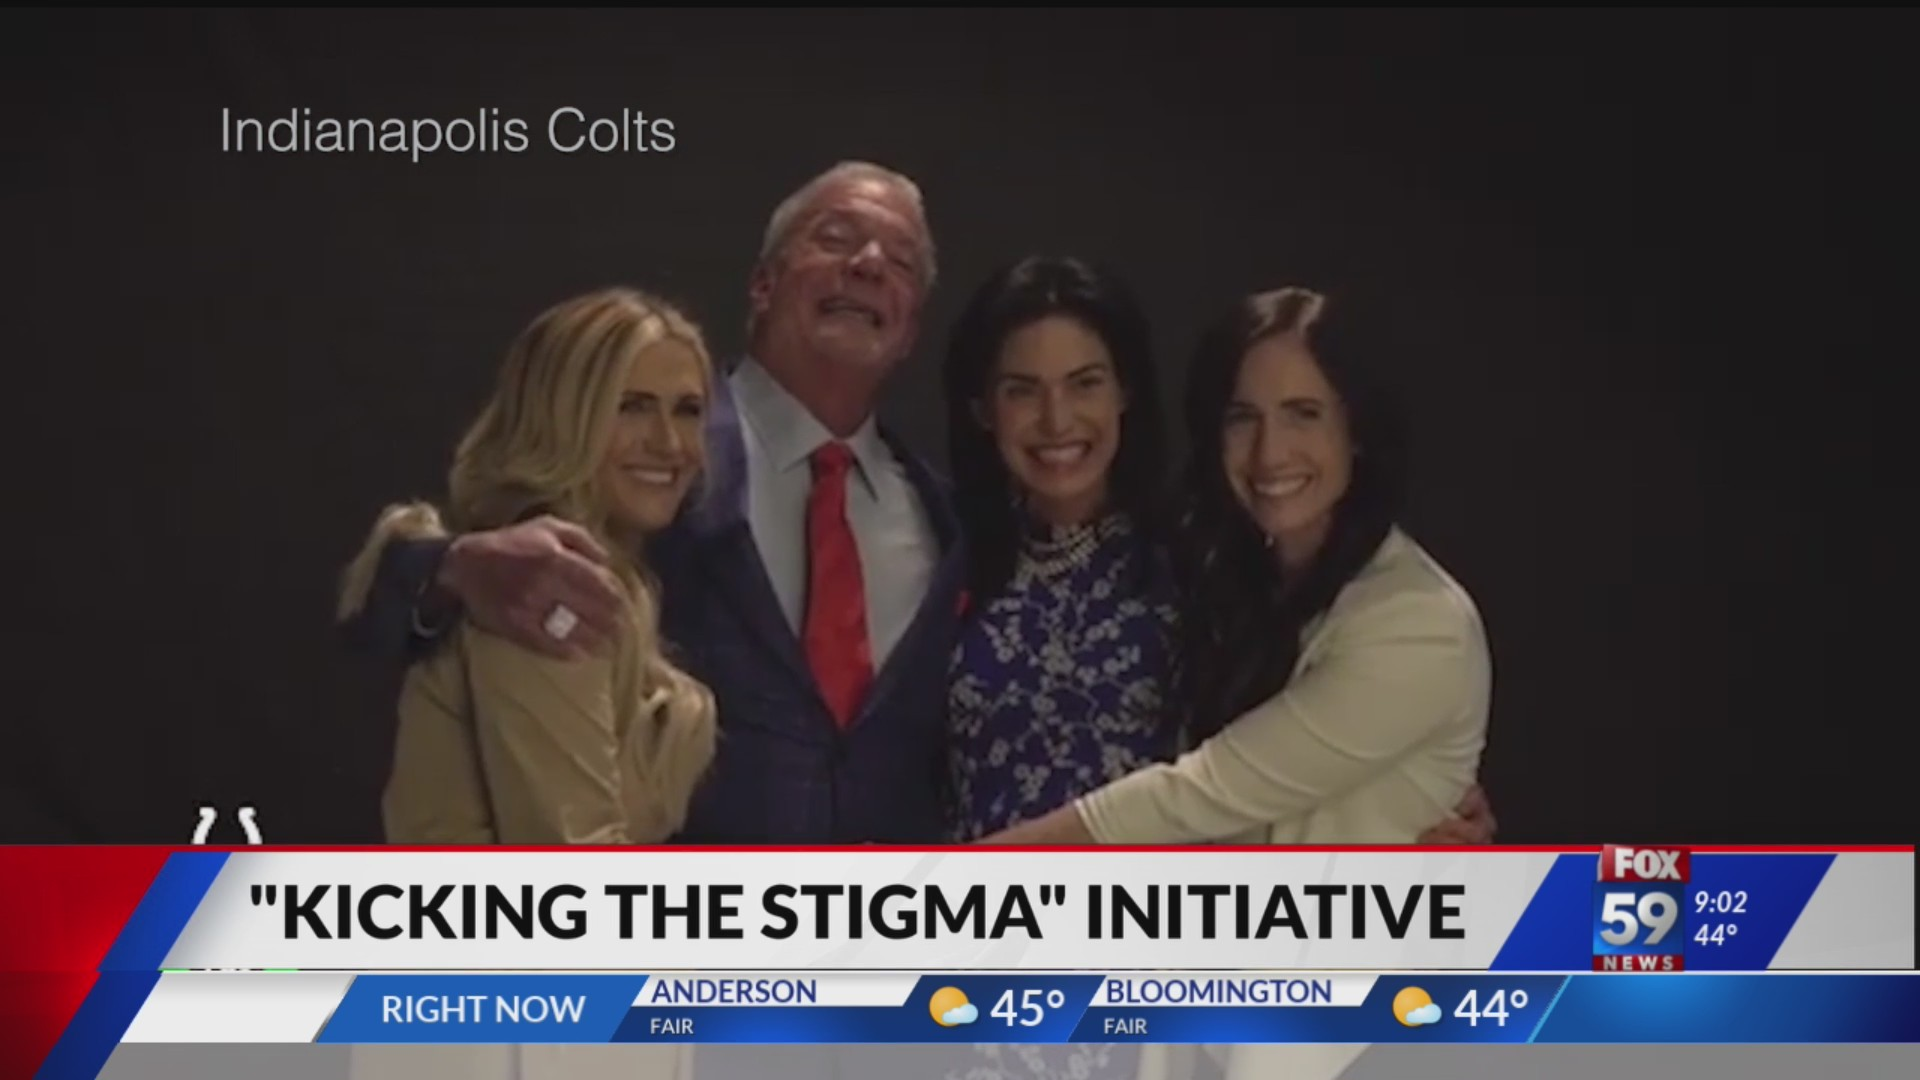 Colts Kicking the Stigma campaign focuses on Mental Health